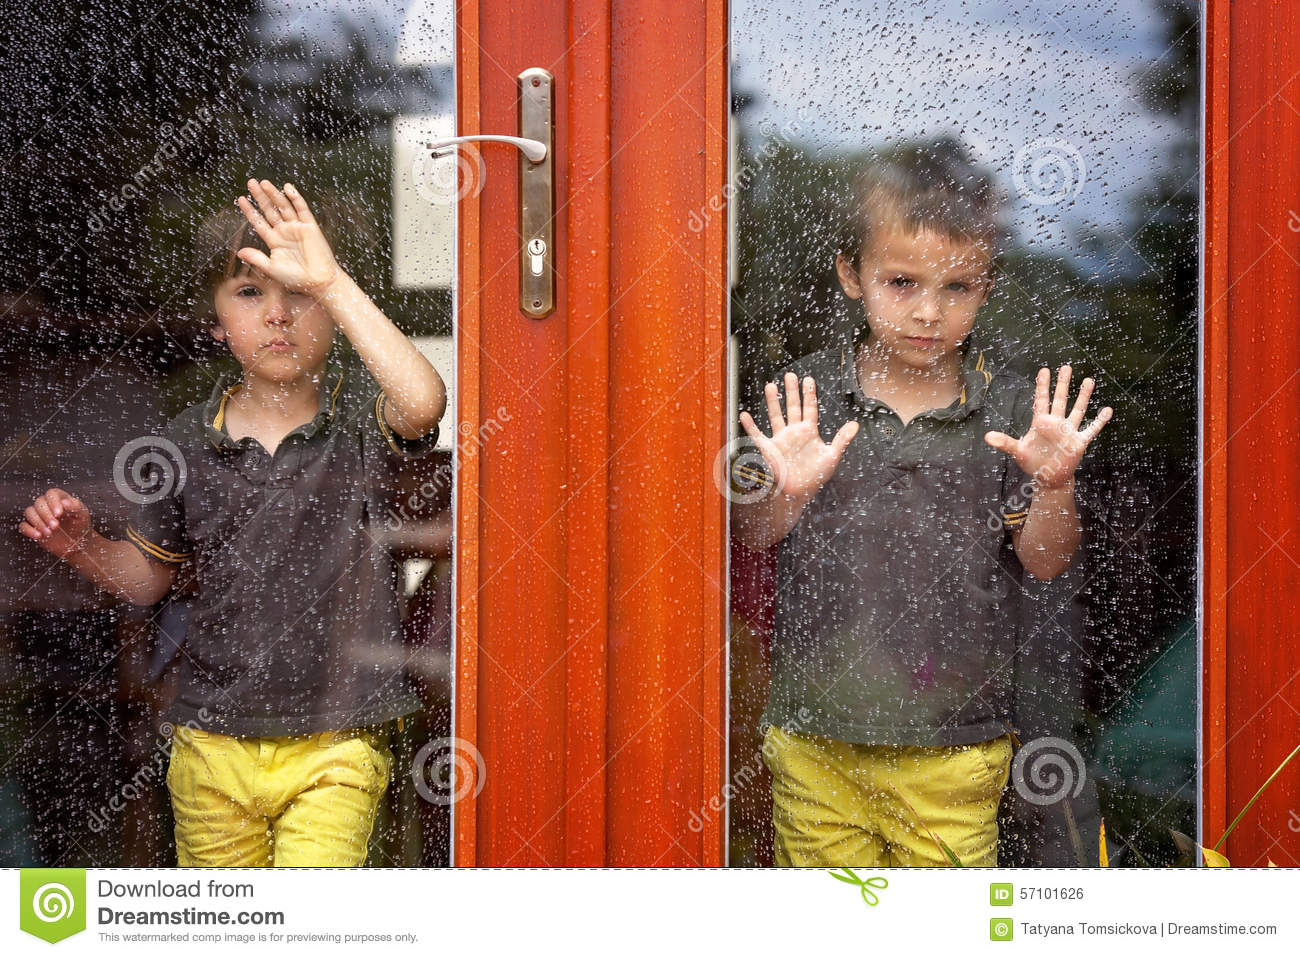 Two Little Boy Wearing Same Clothes Looking Through A Big Glass